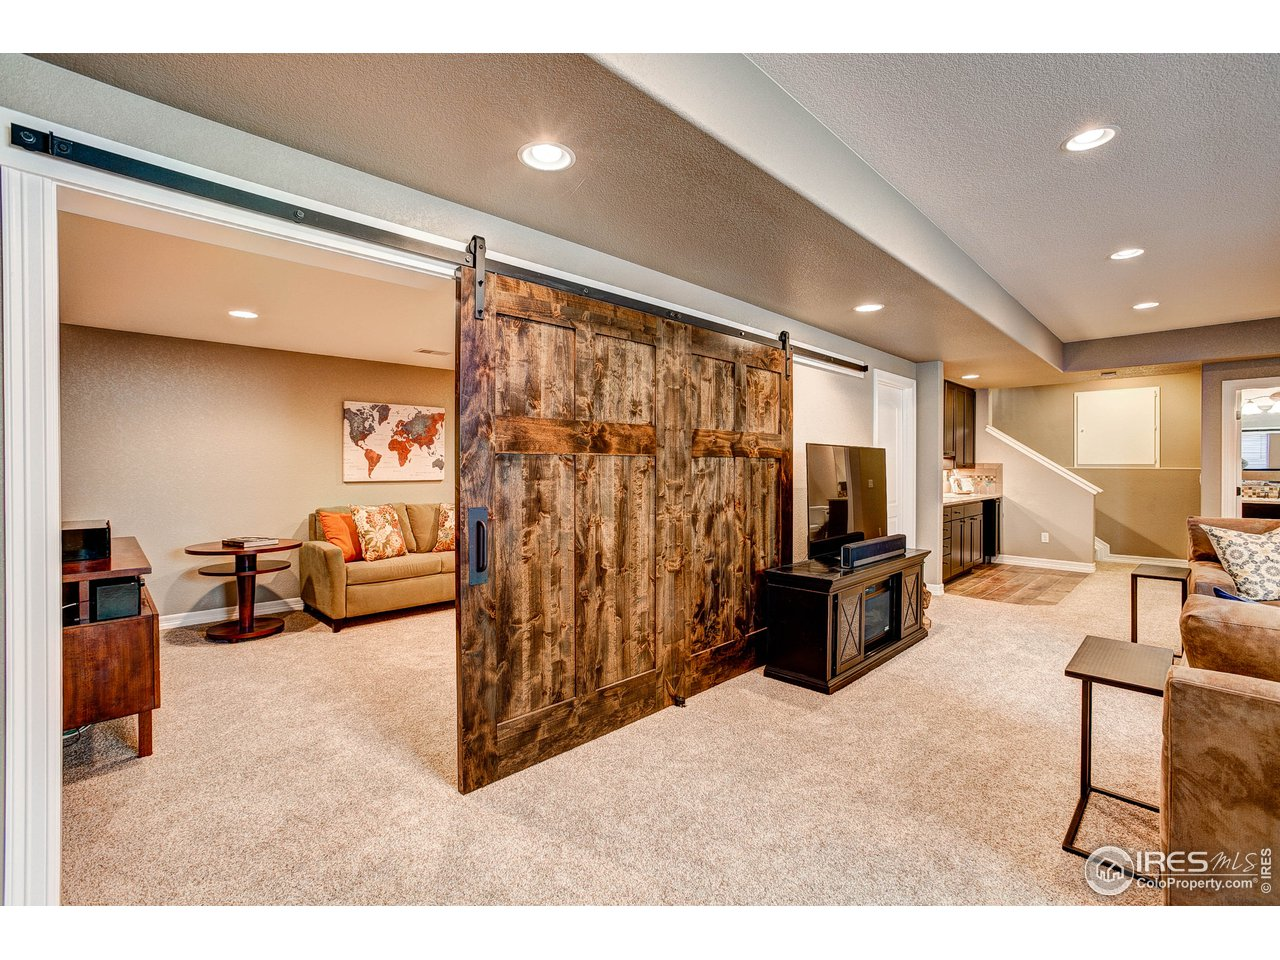 Is this the Largest Barn Door You Have Seen?